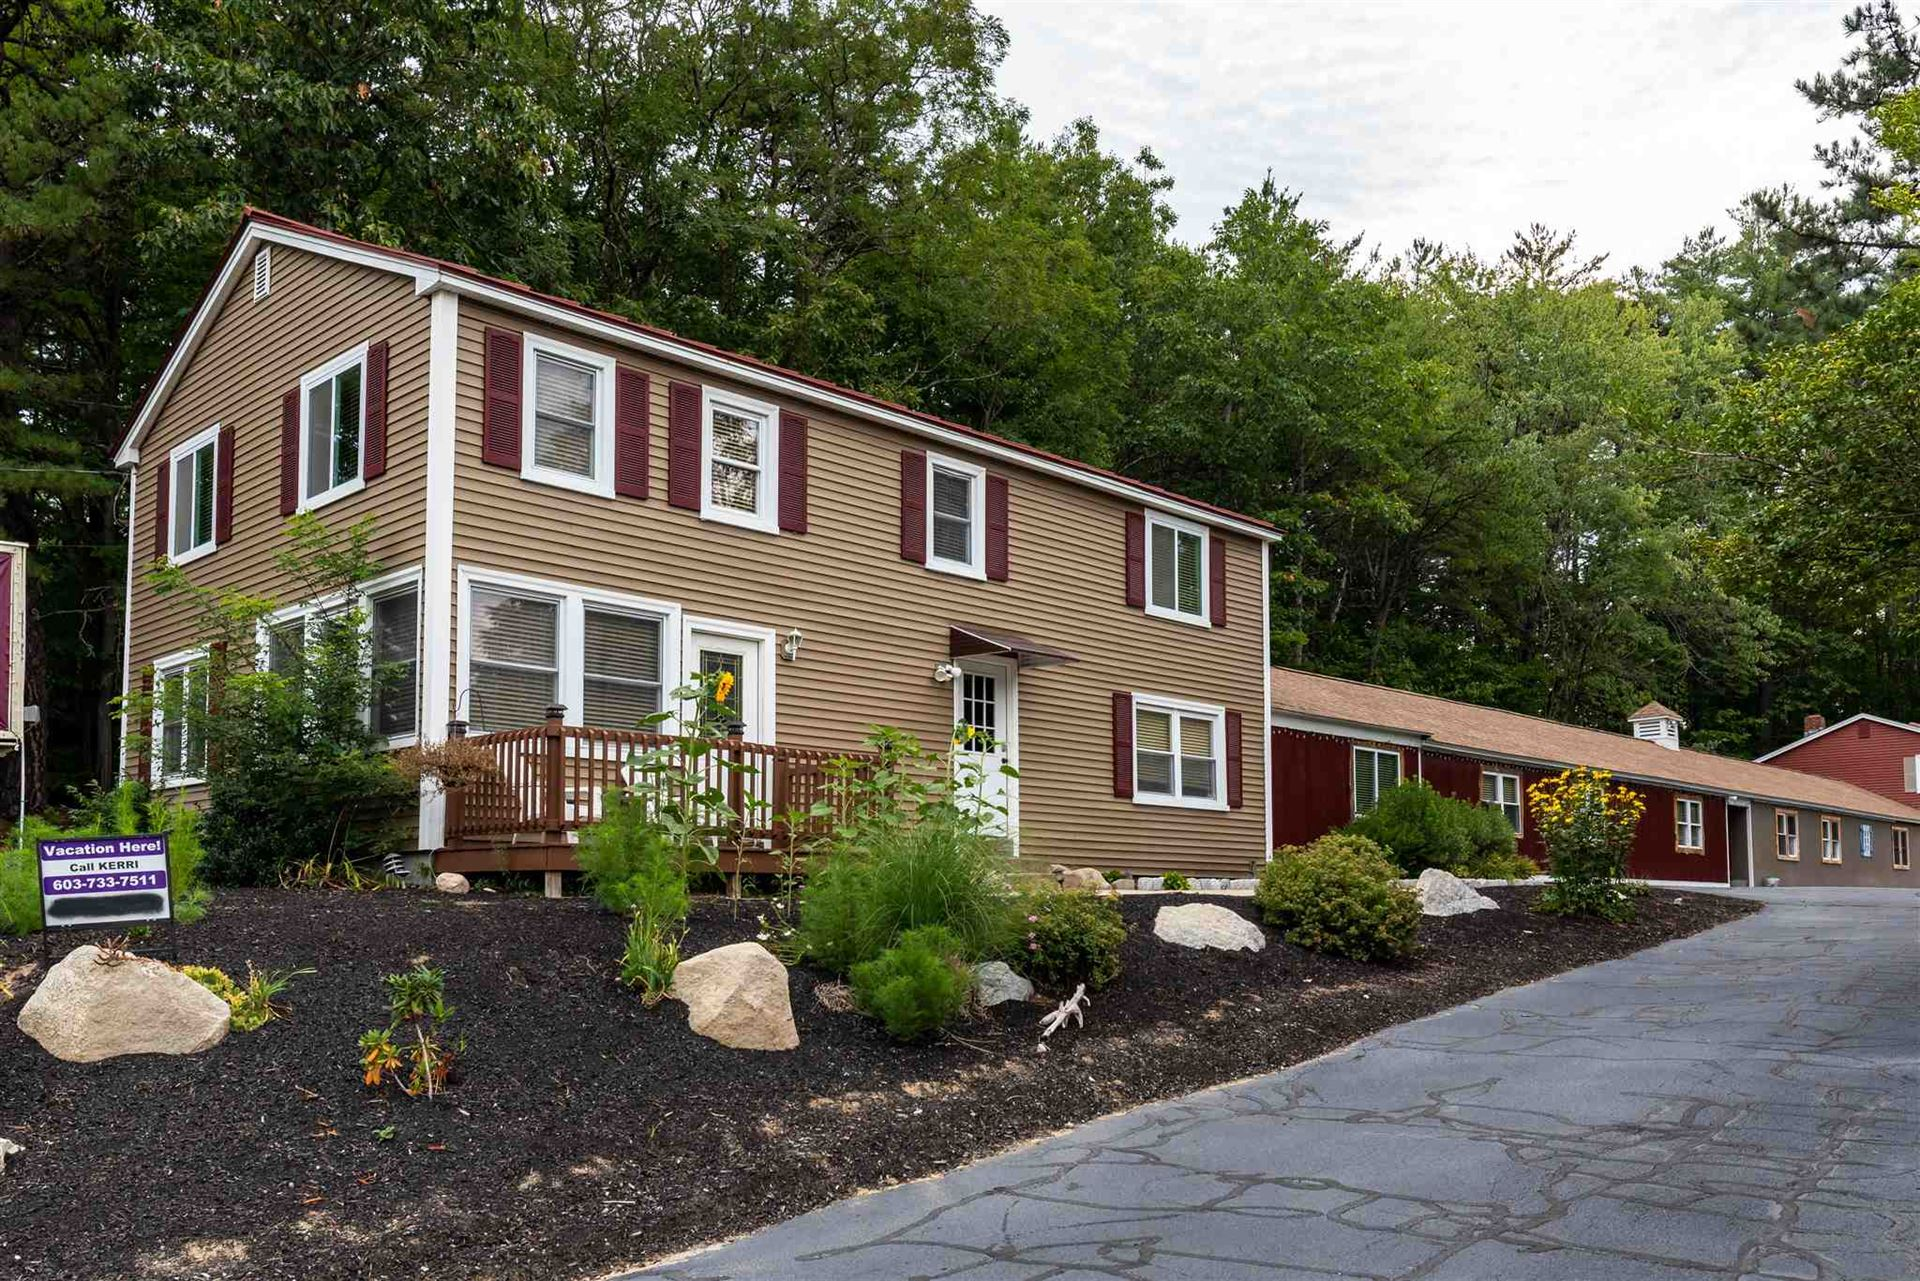 379 White Mtn. Highway, Conway, NH 03813 - MLS#: 4825834